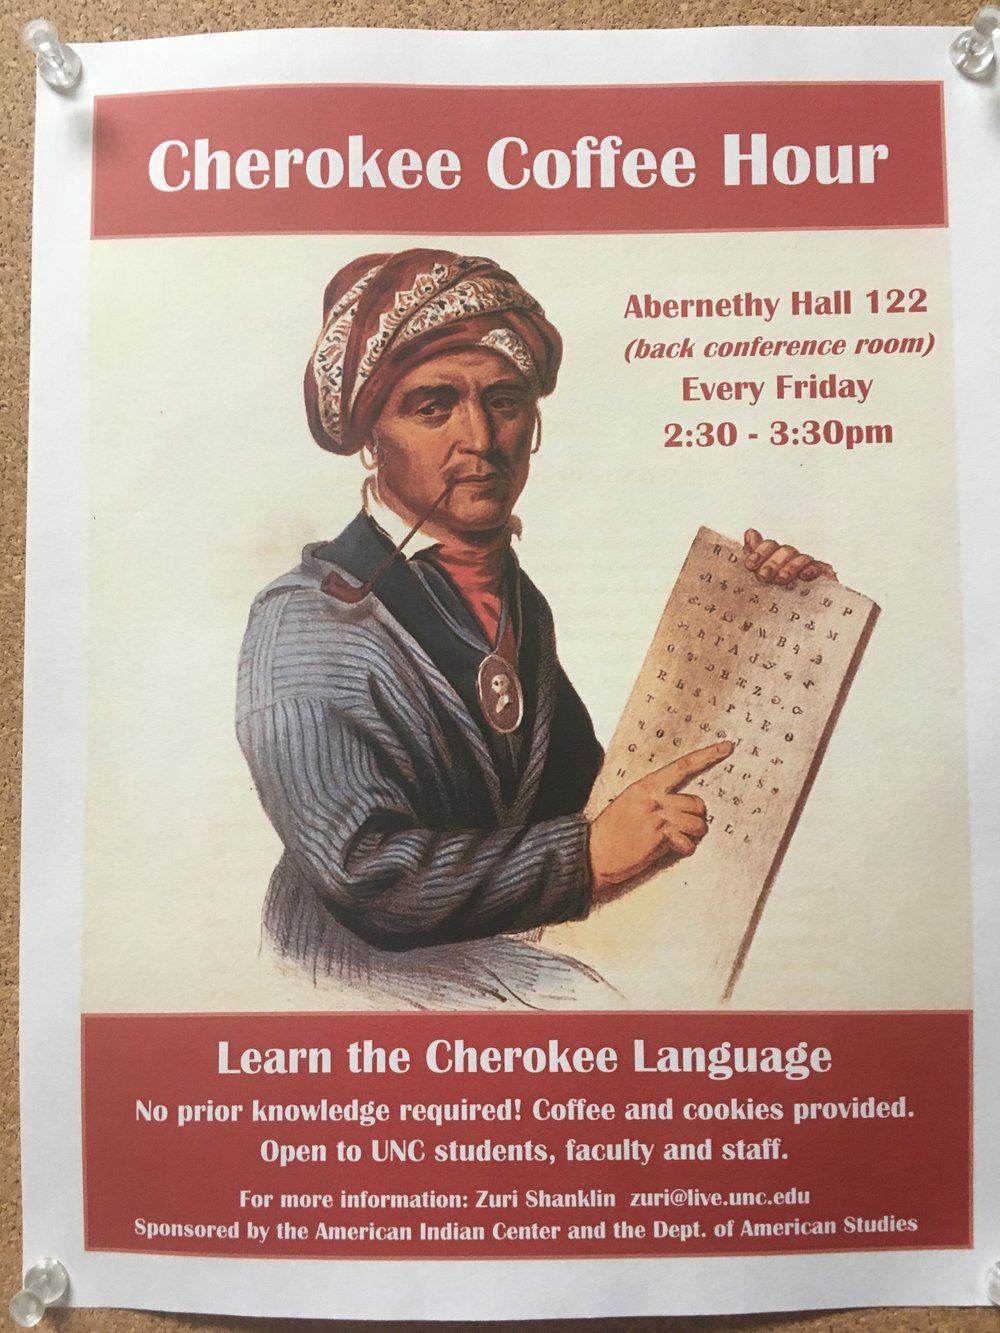 Ben Frey started a Cherokee language coffee hour at UNC.